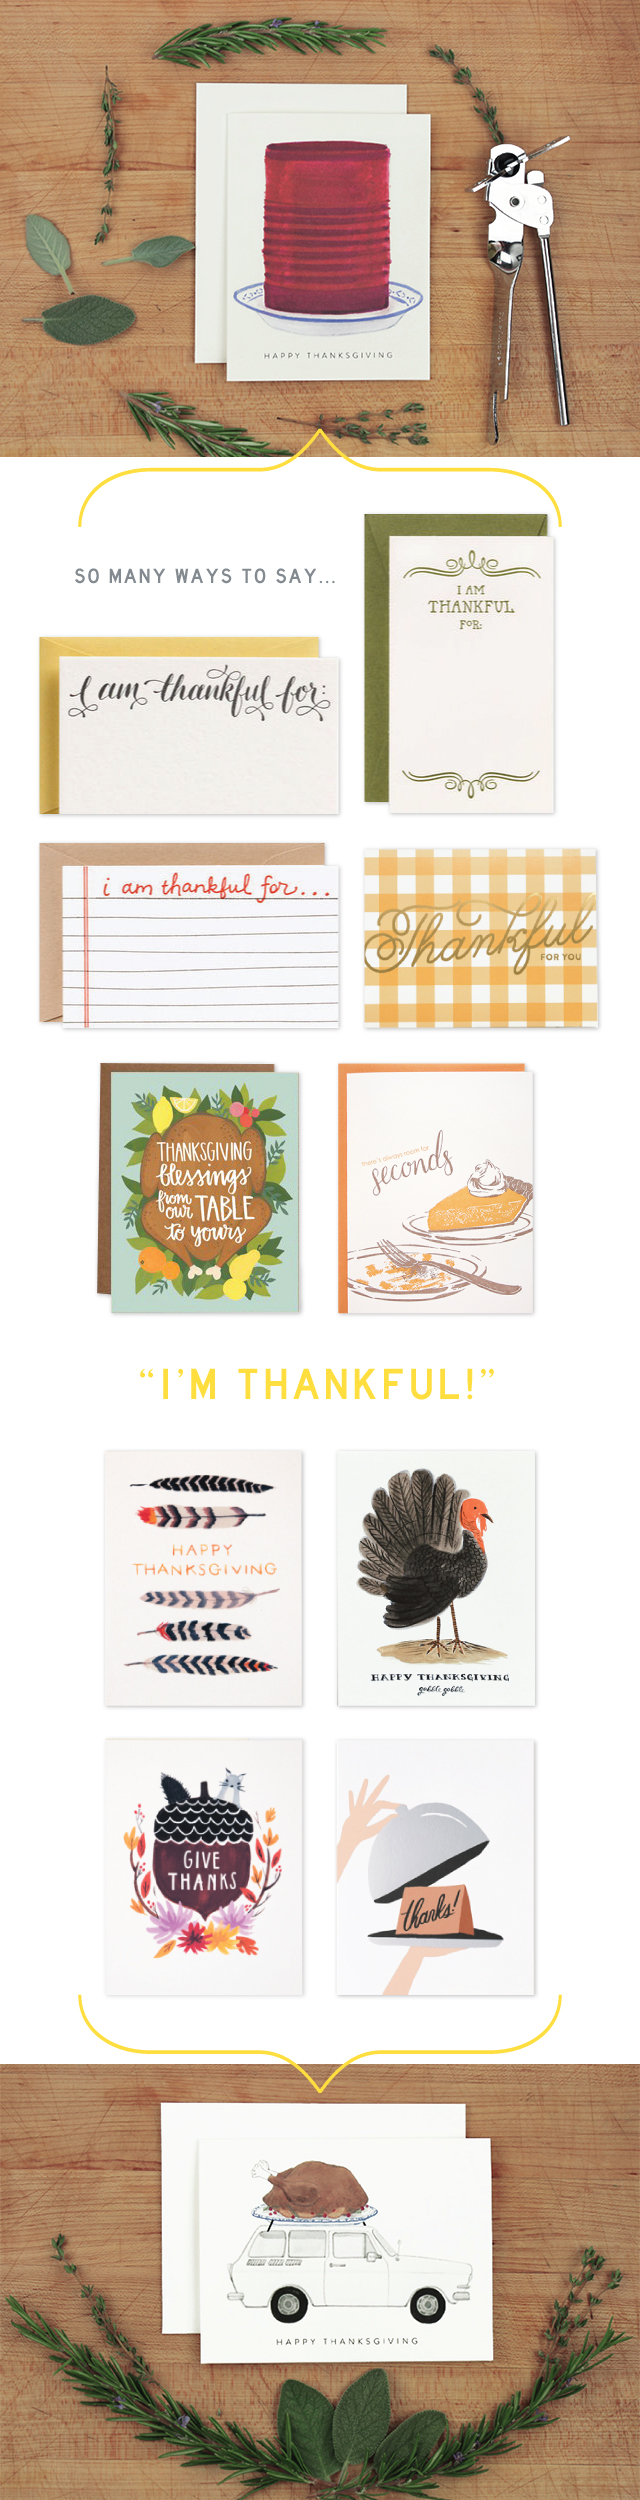 Thanksgiving Cards | Urbanic